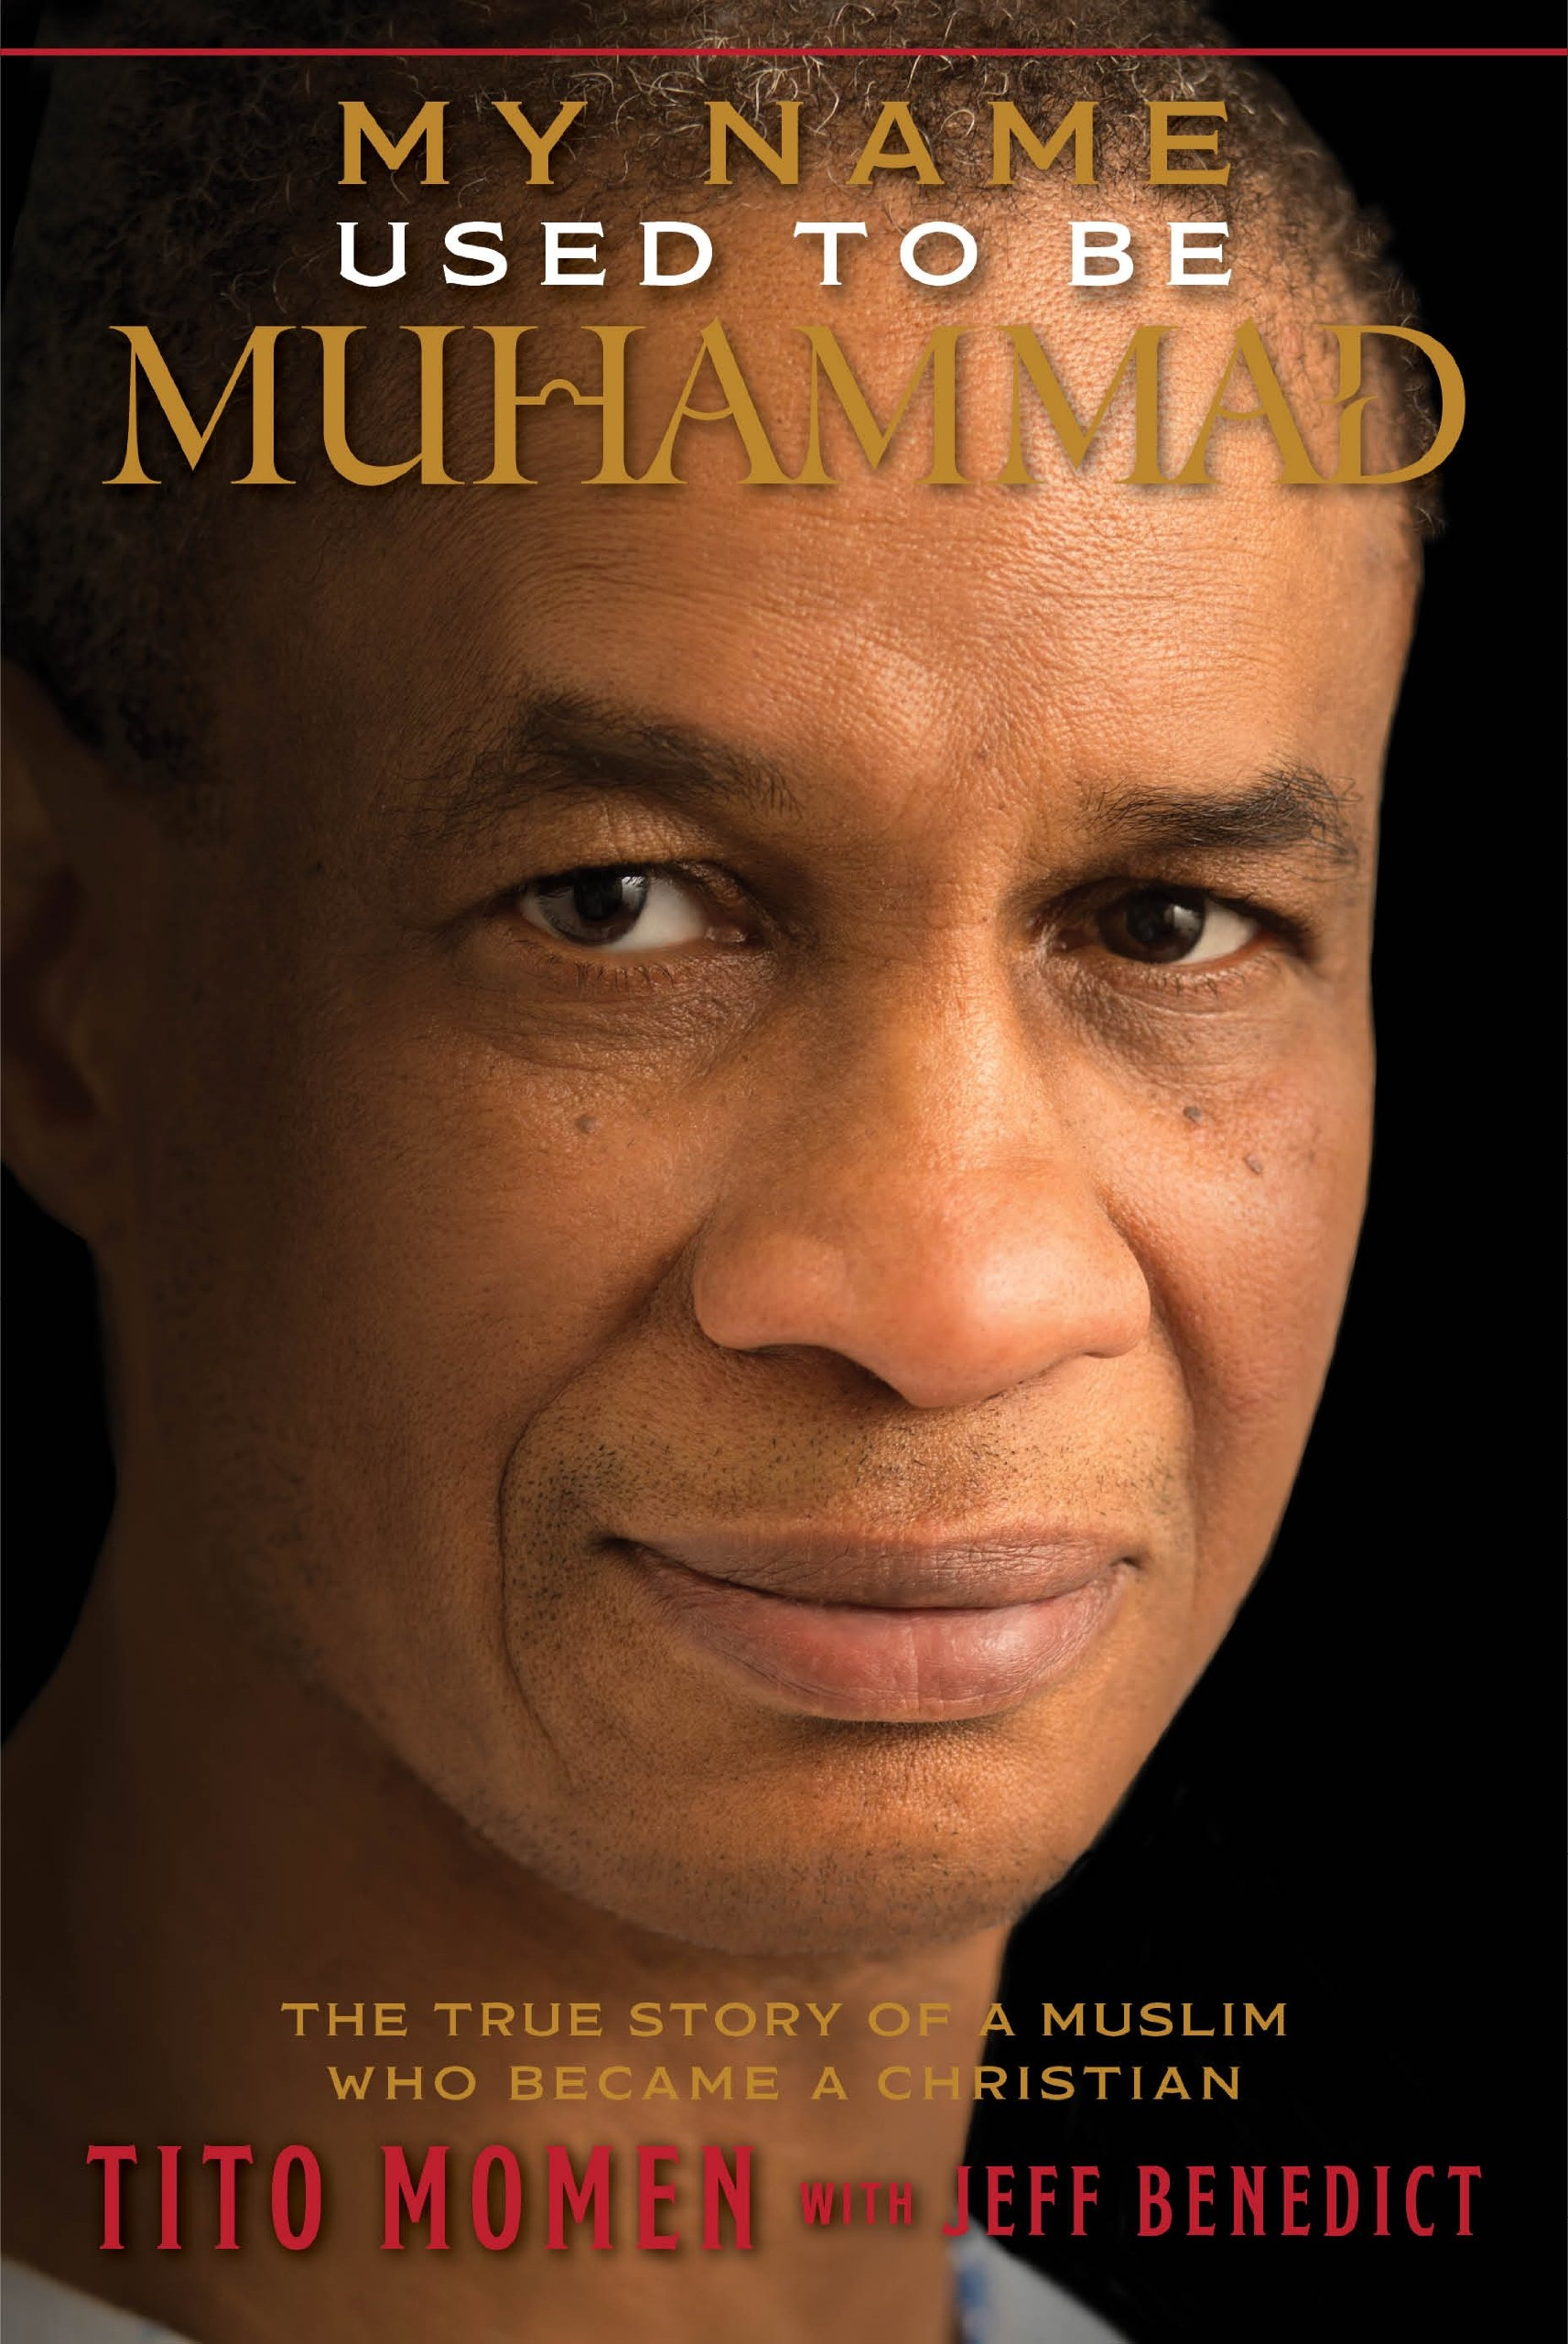 My Name Used To Be Muhammad -  A True Story of a Muslim Who Became a Christian, Momen, Tito with Jeff Benedict